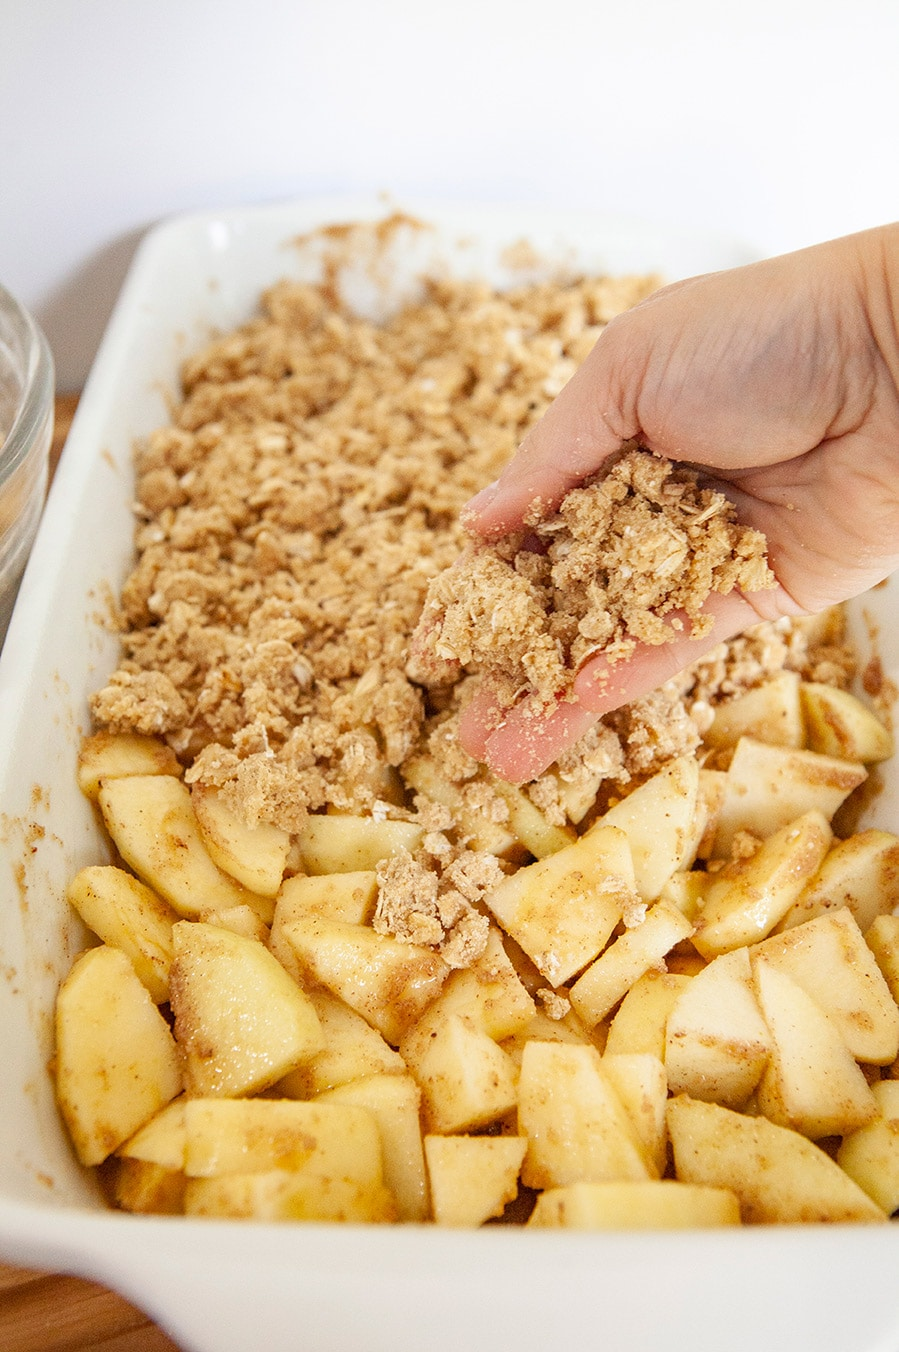 a hand pouring the oat topping over apples in a white casserole dish.